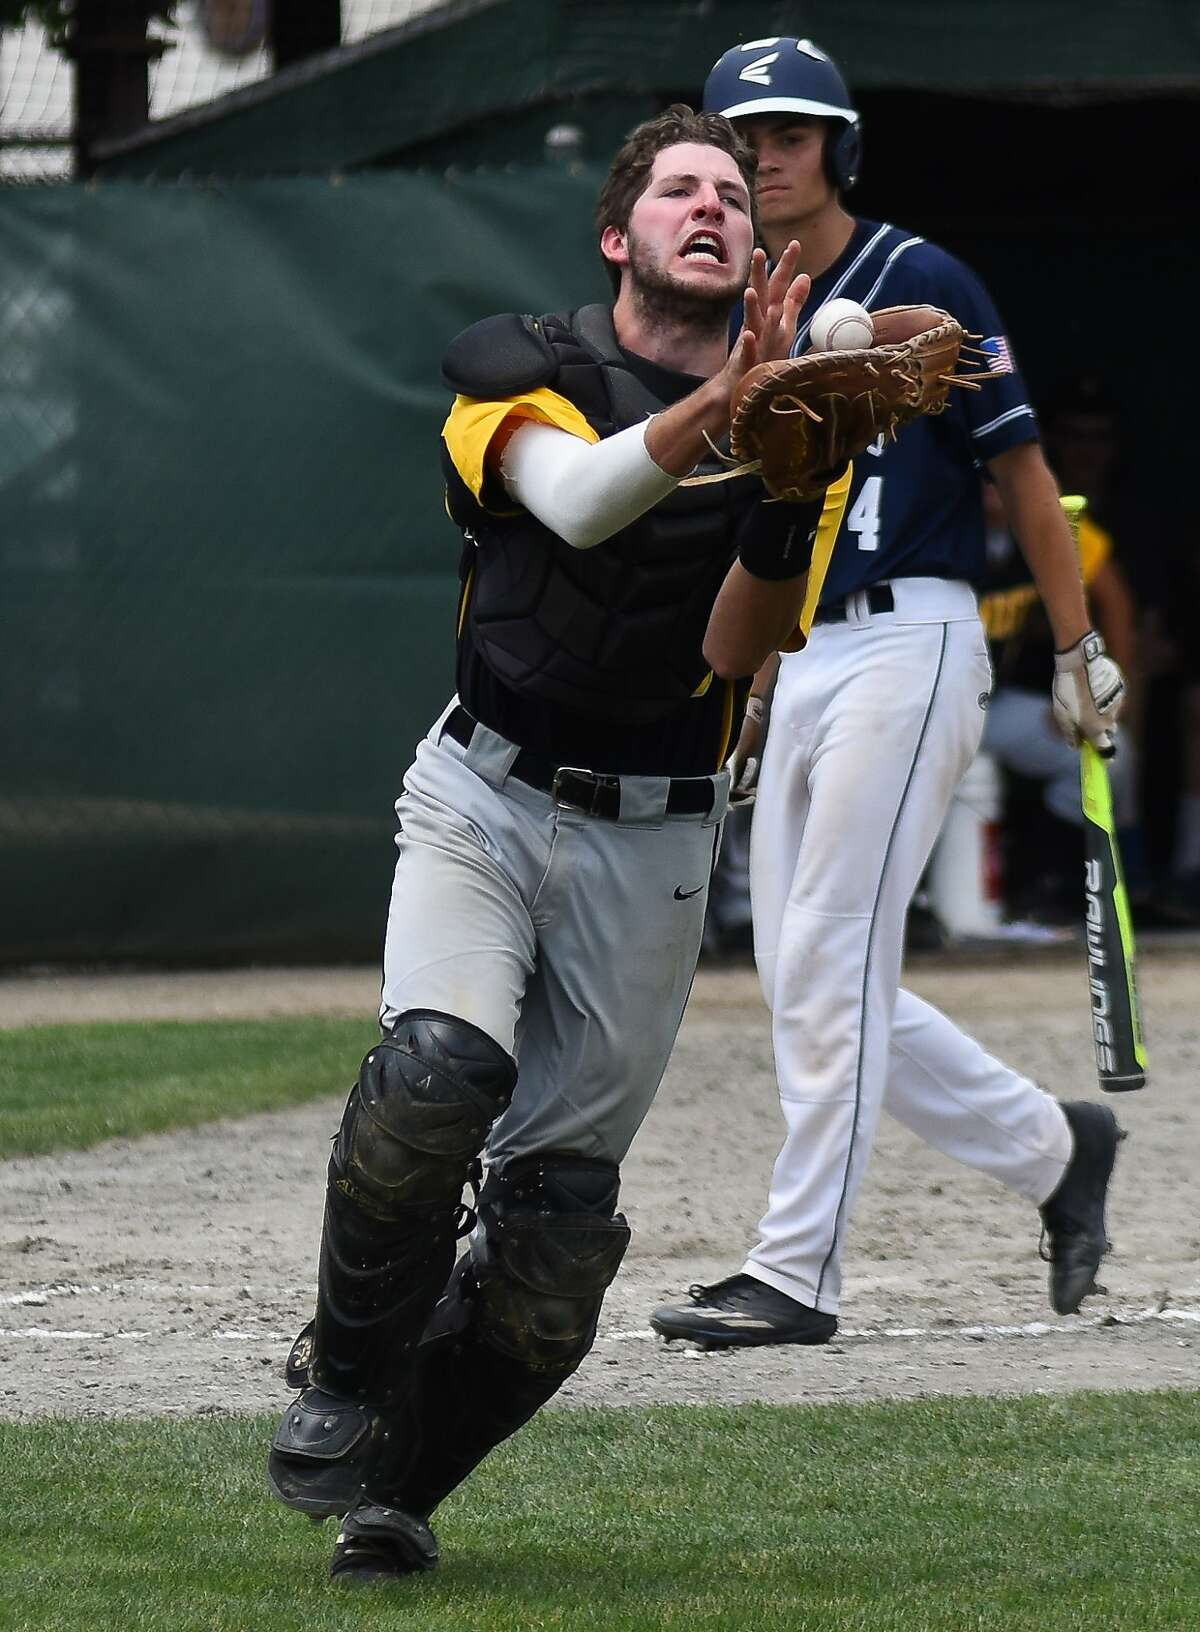 Amity catcher Pat Winkel, front, extends to catch a pop up bunted by Staples' Max Popken, rear, during Saturday's Class LL championship game at Palmer Field in Middletown.